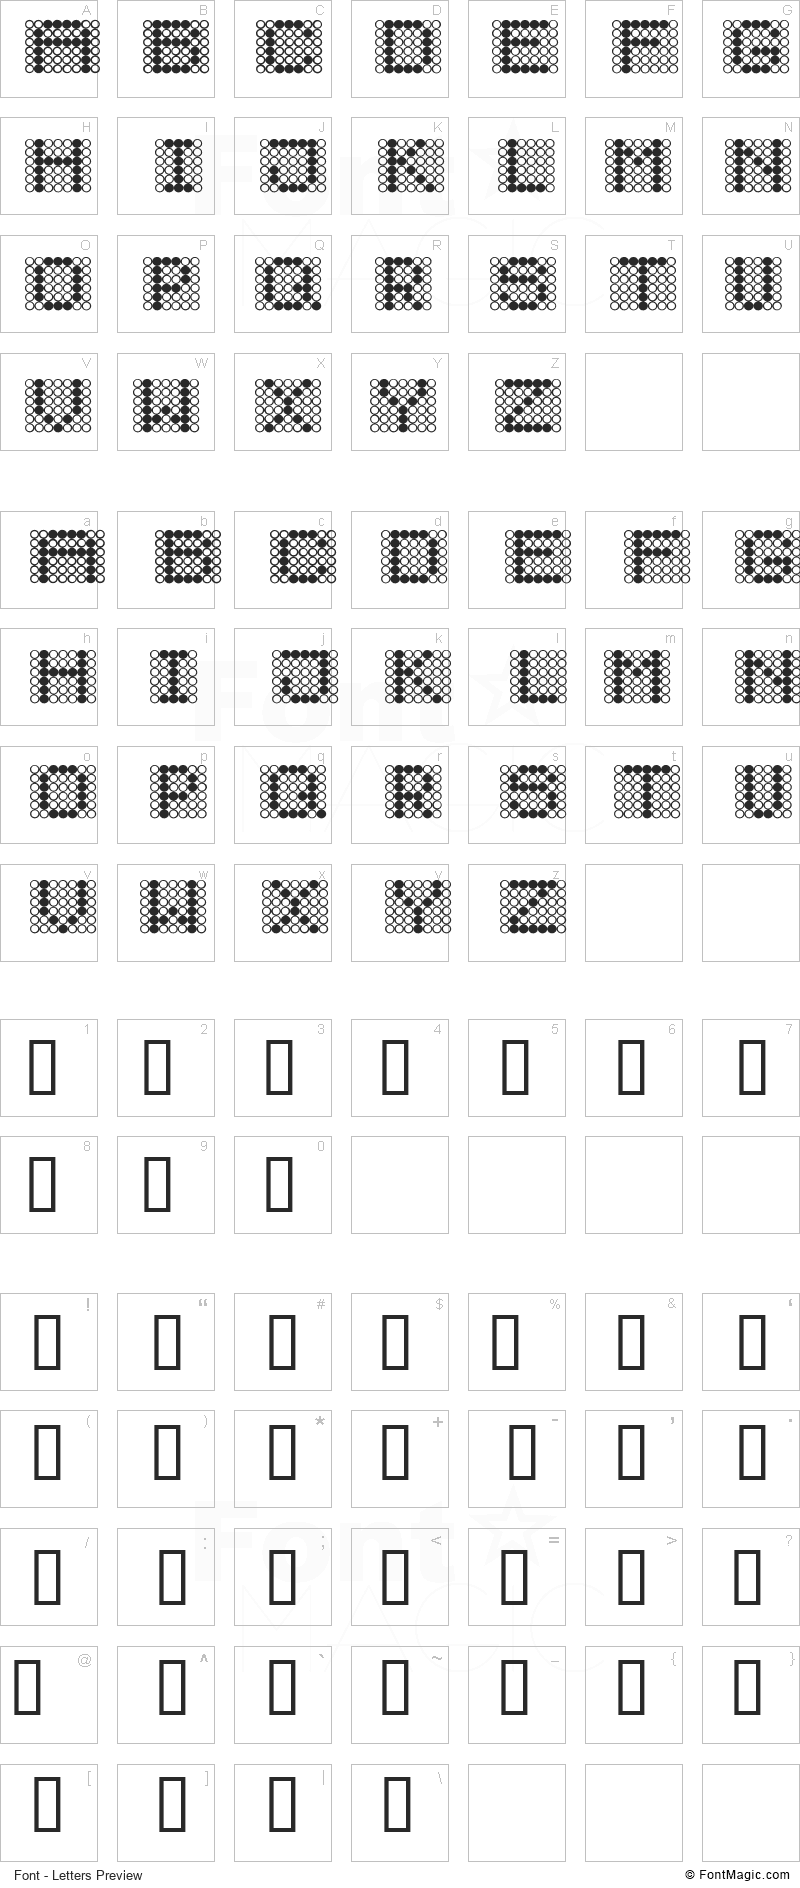 Diodos Font - All Latters Preview Chart